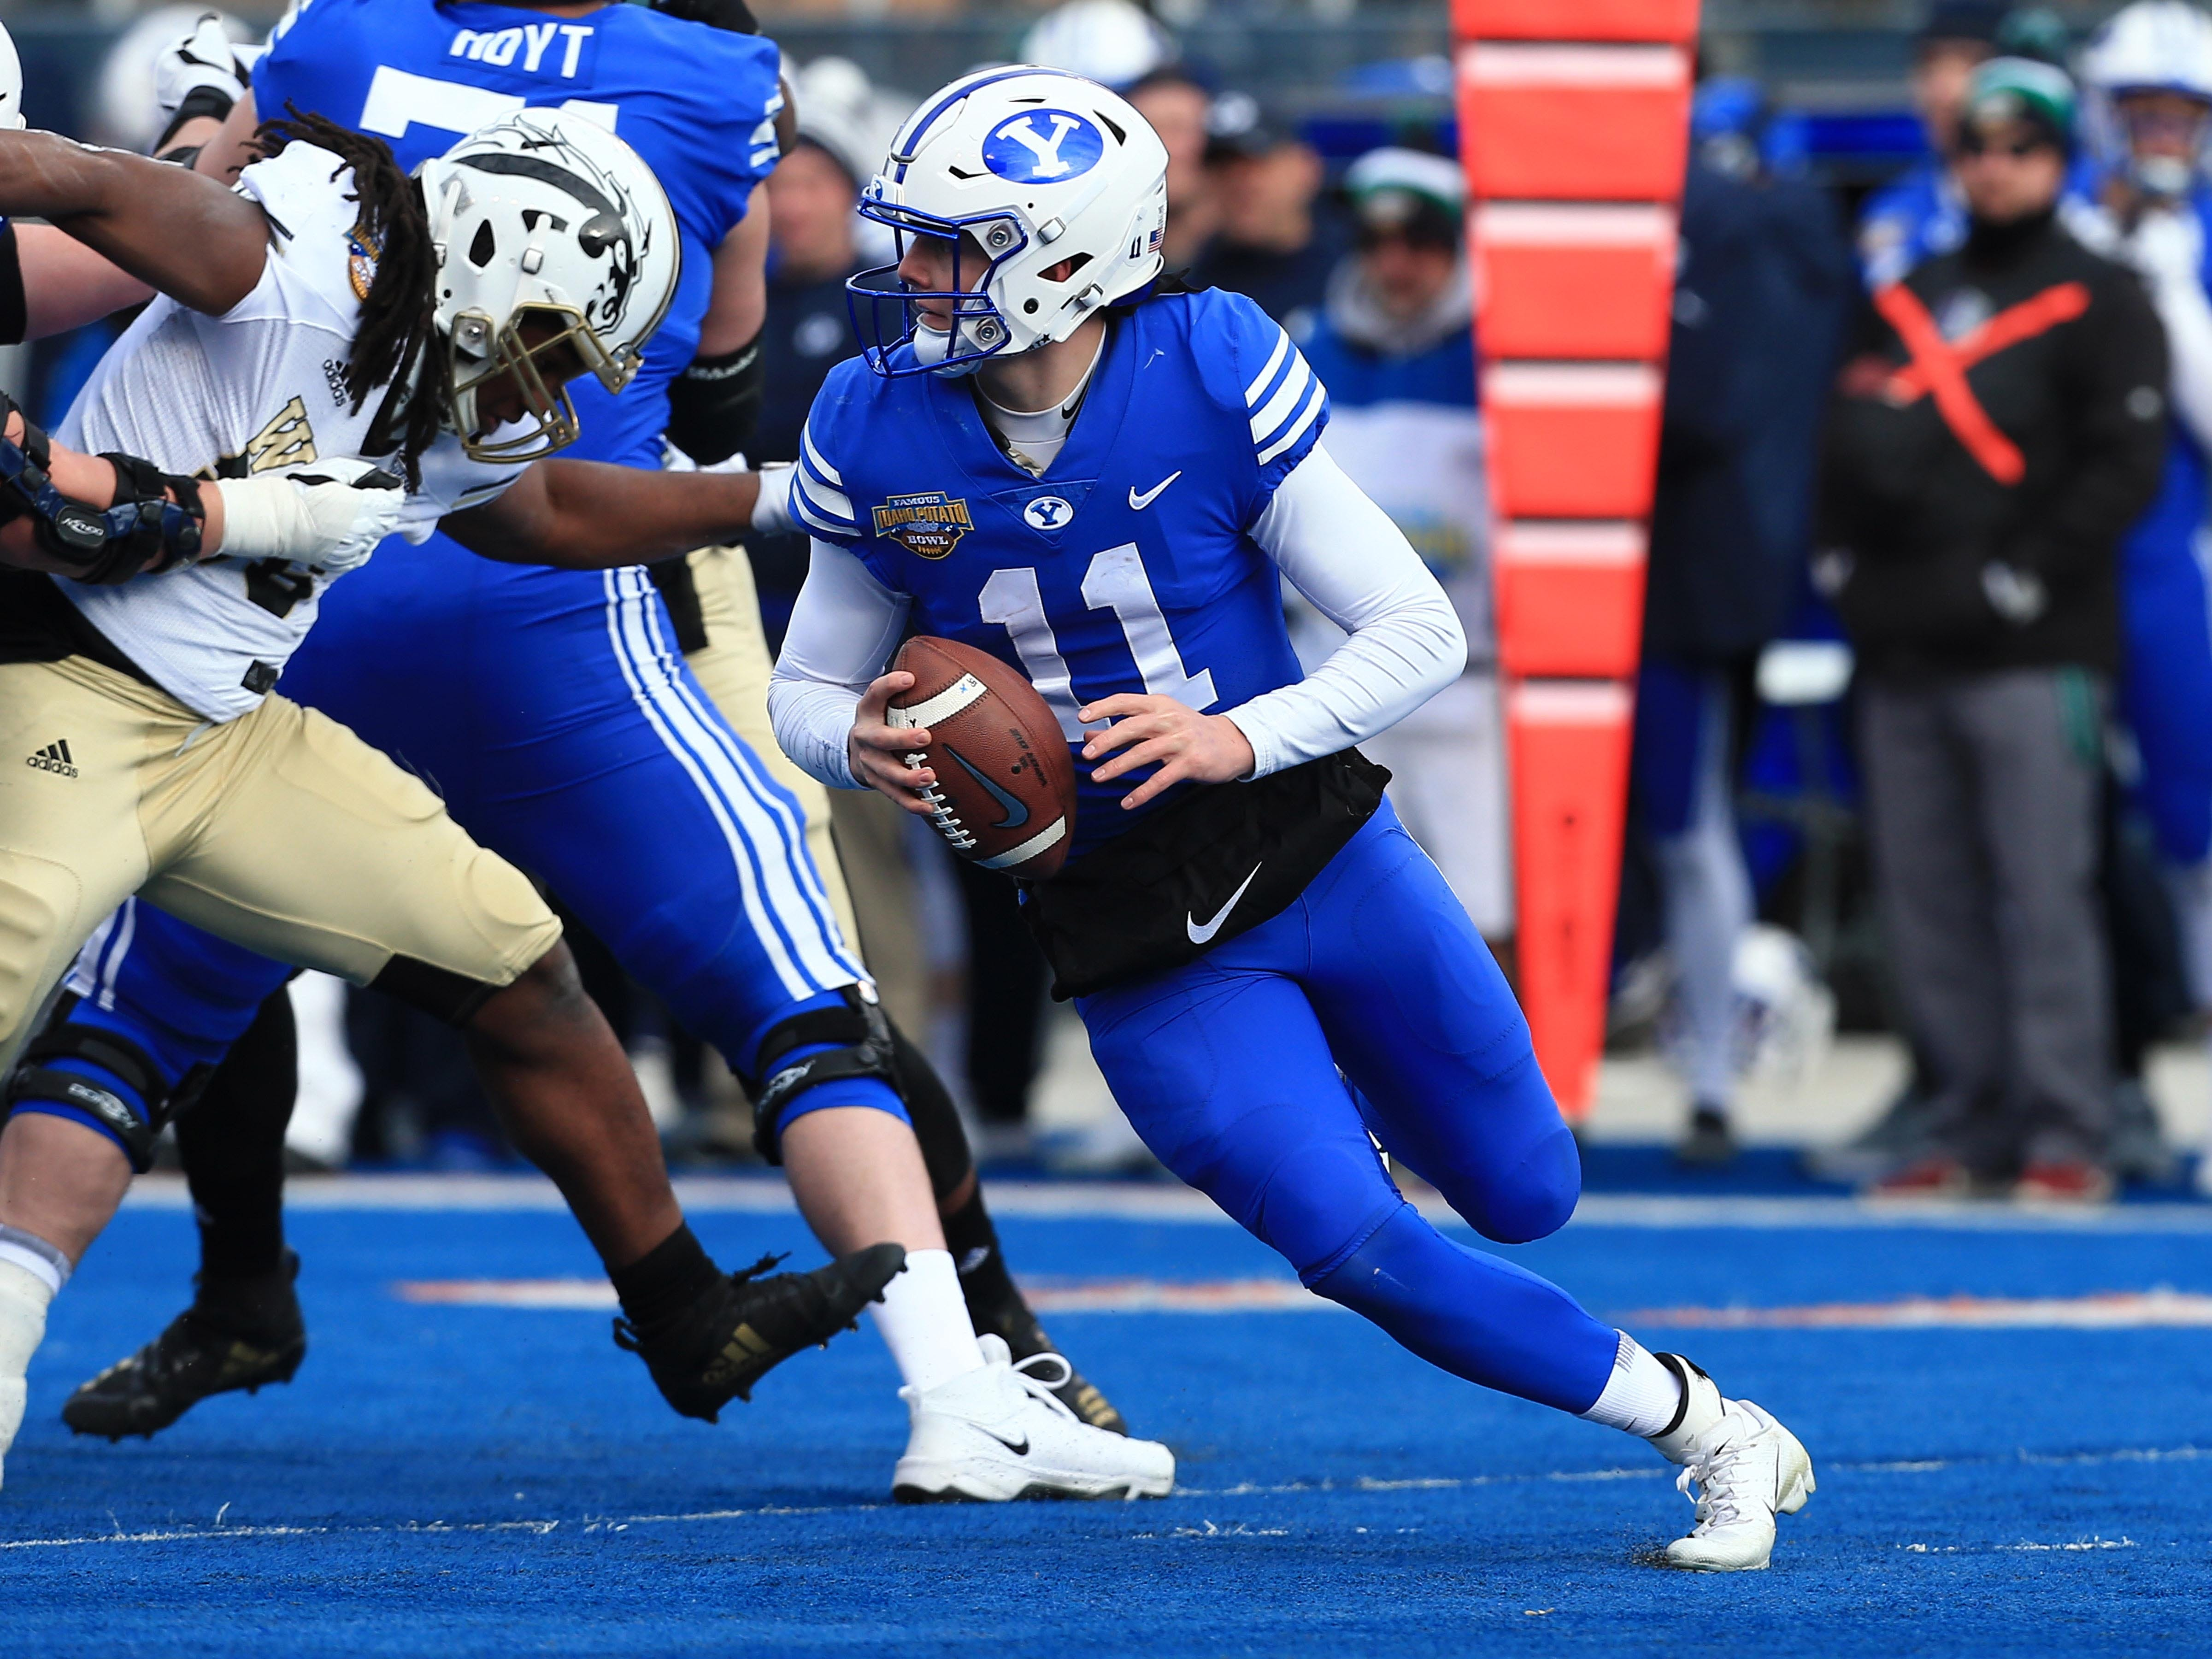 Dec 21, 2018; Boise, ID, United States; Brigham Young Cougars quarterback Zach Wilson (11) runs with the ball in the first half against the Western Michigan Broncos at the 2018 Potato Bowl at Albertsons Stadium.